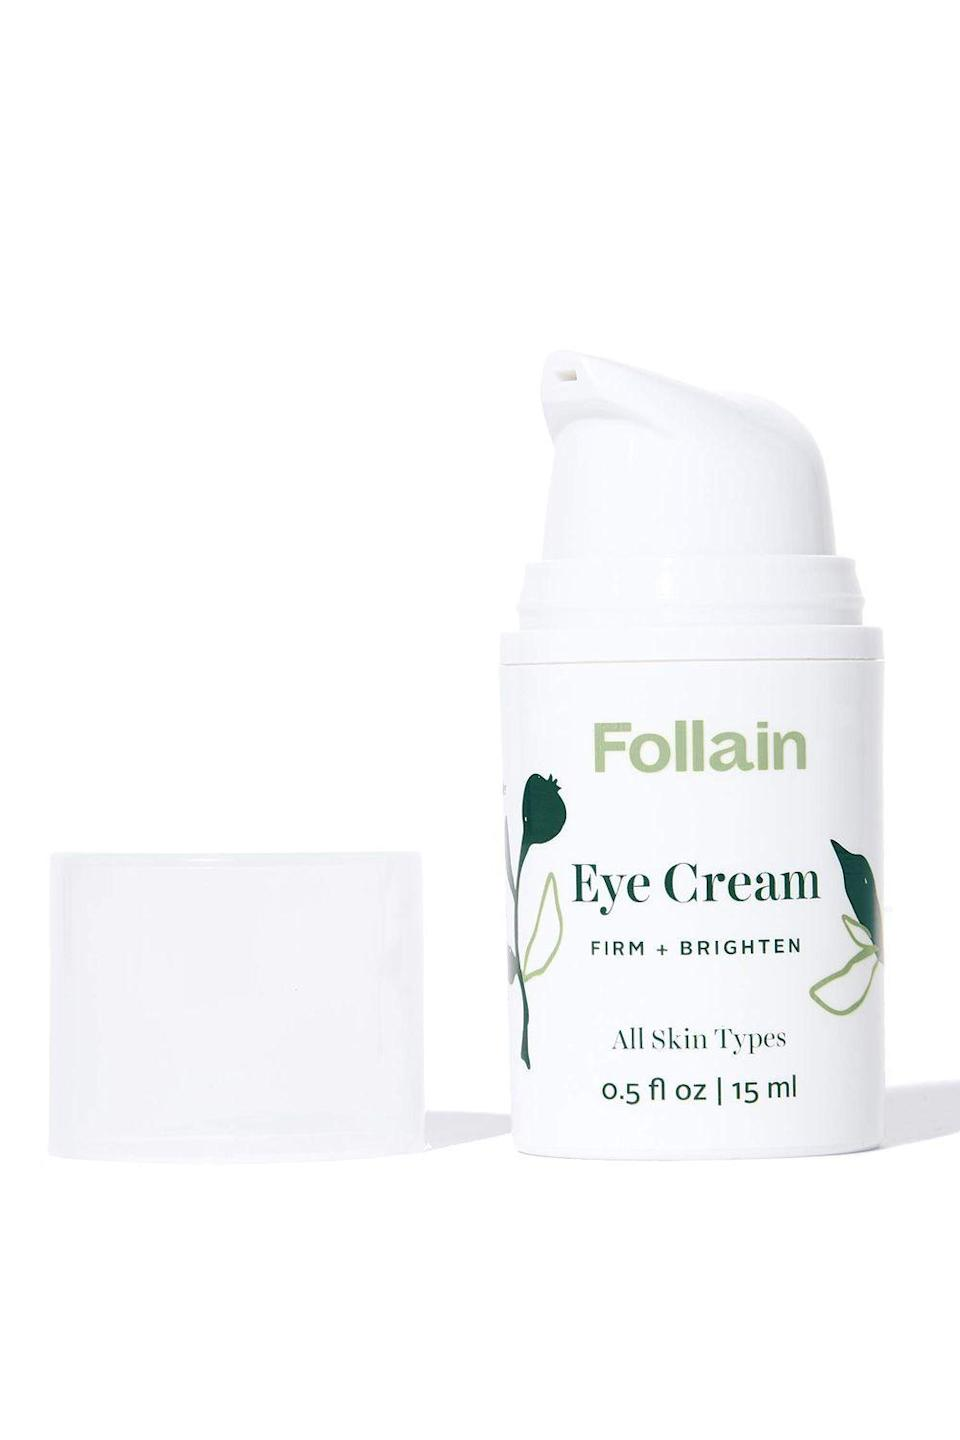 """<p><strong>Follain</strong></p><p>ulta.com</p><p><strong>$36.00</strong></p><p><a href=""""https://go.redirectingat.com?id=74968X1596630&url=https%3A%2F%2Fwww.ulta.com%2Feye-cream-firm-brighten%3FproductId%3Dpimprod2013709&sref=https%3A%2F%2Fwww.cosmopolitan.com%2Fstyle-beauty%2Fbeauty%2Fg32869915%2Fbest-retinol-eye-cream%2F"""" rel=""""nofollow noopener"""" target=""""_blank"""" data-ylk=""""slk:Shop Now"""" class=""""link rapid-noclick-resp"""">Shop Now</a></p><p>Just because this retinol eye cream is natural doesn't mean it's any less powerful than other options on the list. The hero ingredient is actually <a href=""""https://www.cosmopolitan.com/style-beauty/beauty/a28831632/bakuchiol-retinol-alternative-skin-products/"""" rel=""""nofollow noopener"""" target=""""_blank"""" data-ylk=""""slk:bakuchiol"""" class=""""link rapid-noclick-resp"""">bakuchiol</a>—a natural, plant-based ingredient that <strong>treats skin to the the same smoothing and glow-boosting benefits as retinol.</strong></p>"""